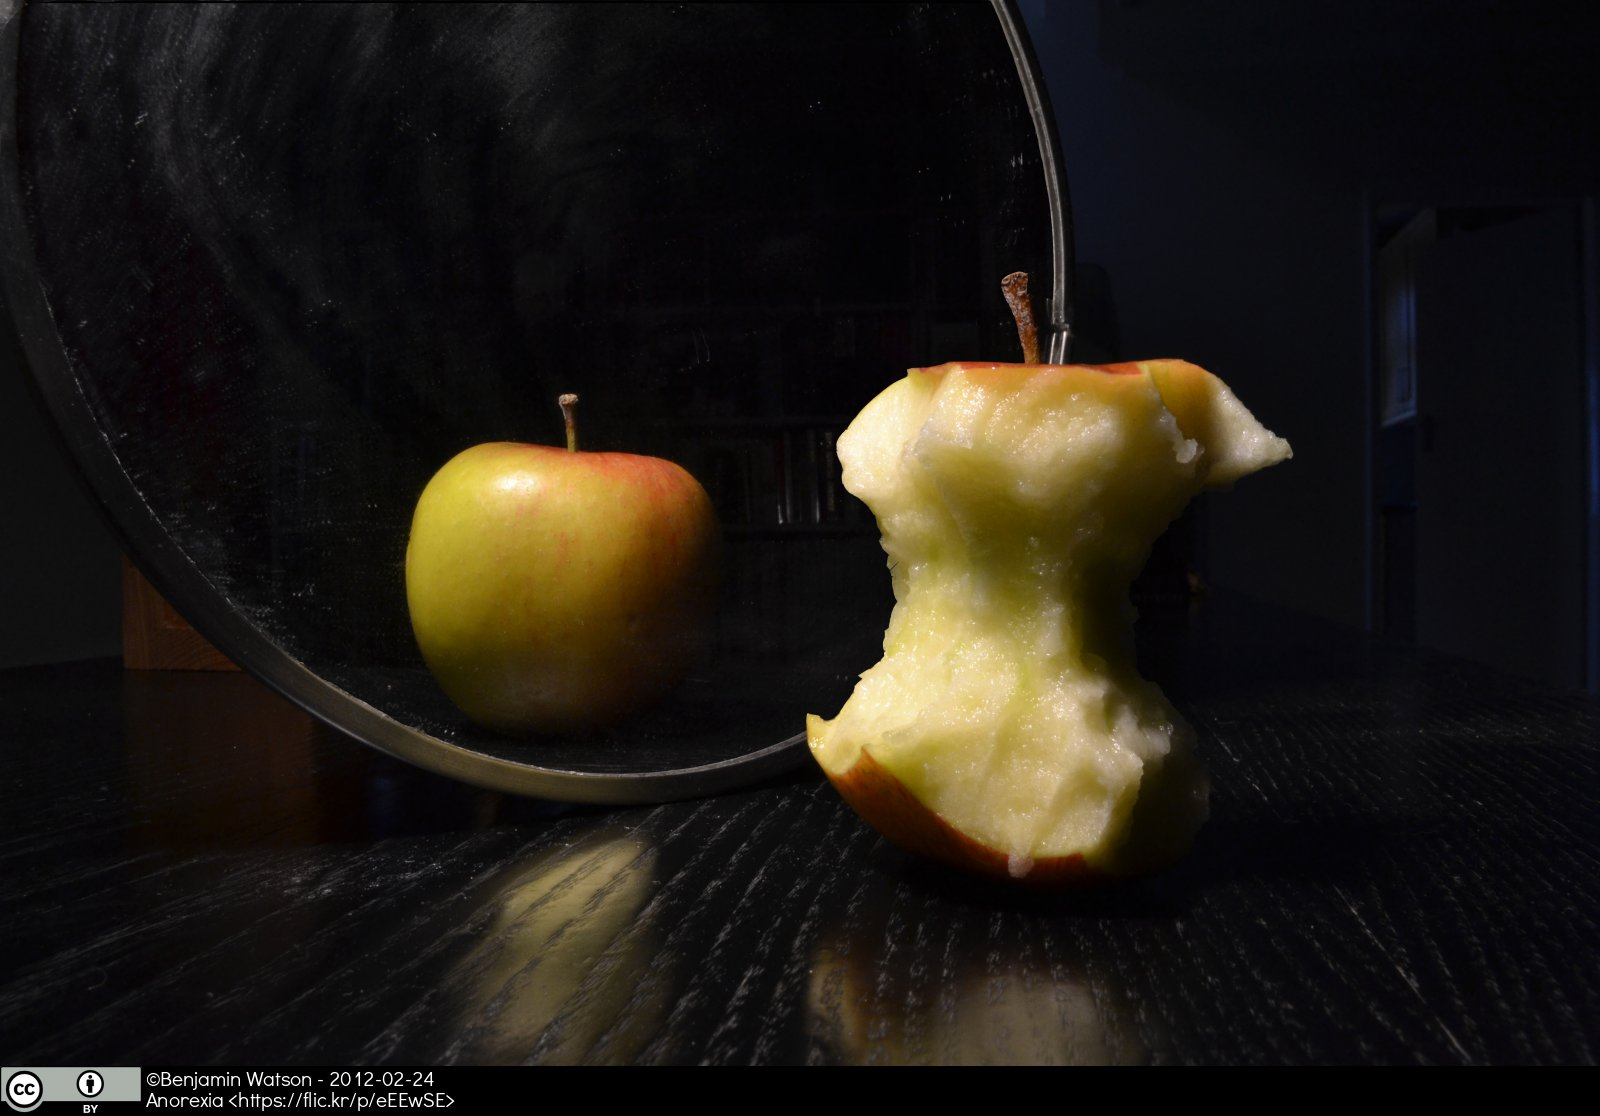 A whole apple and a partially eaten apple